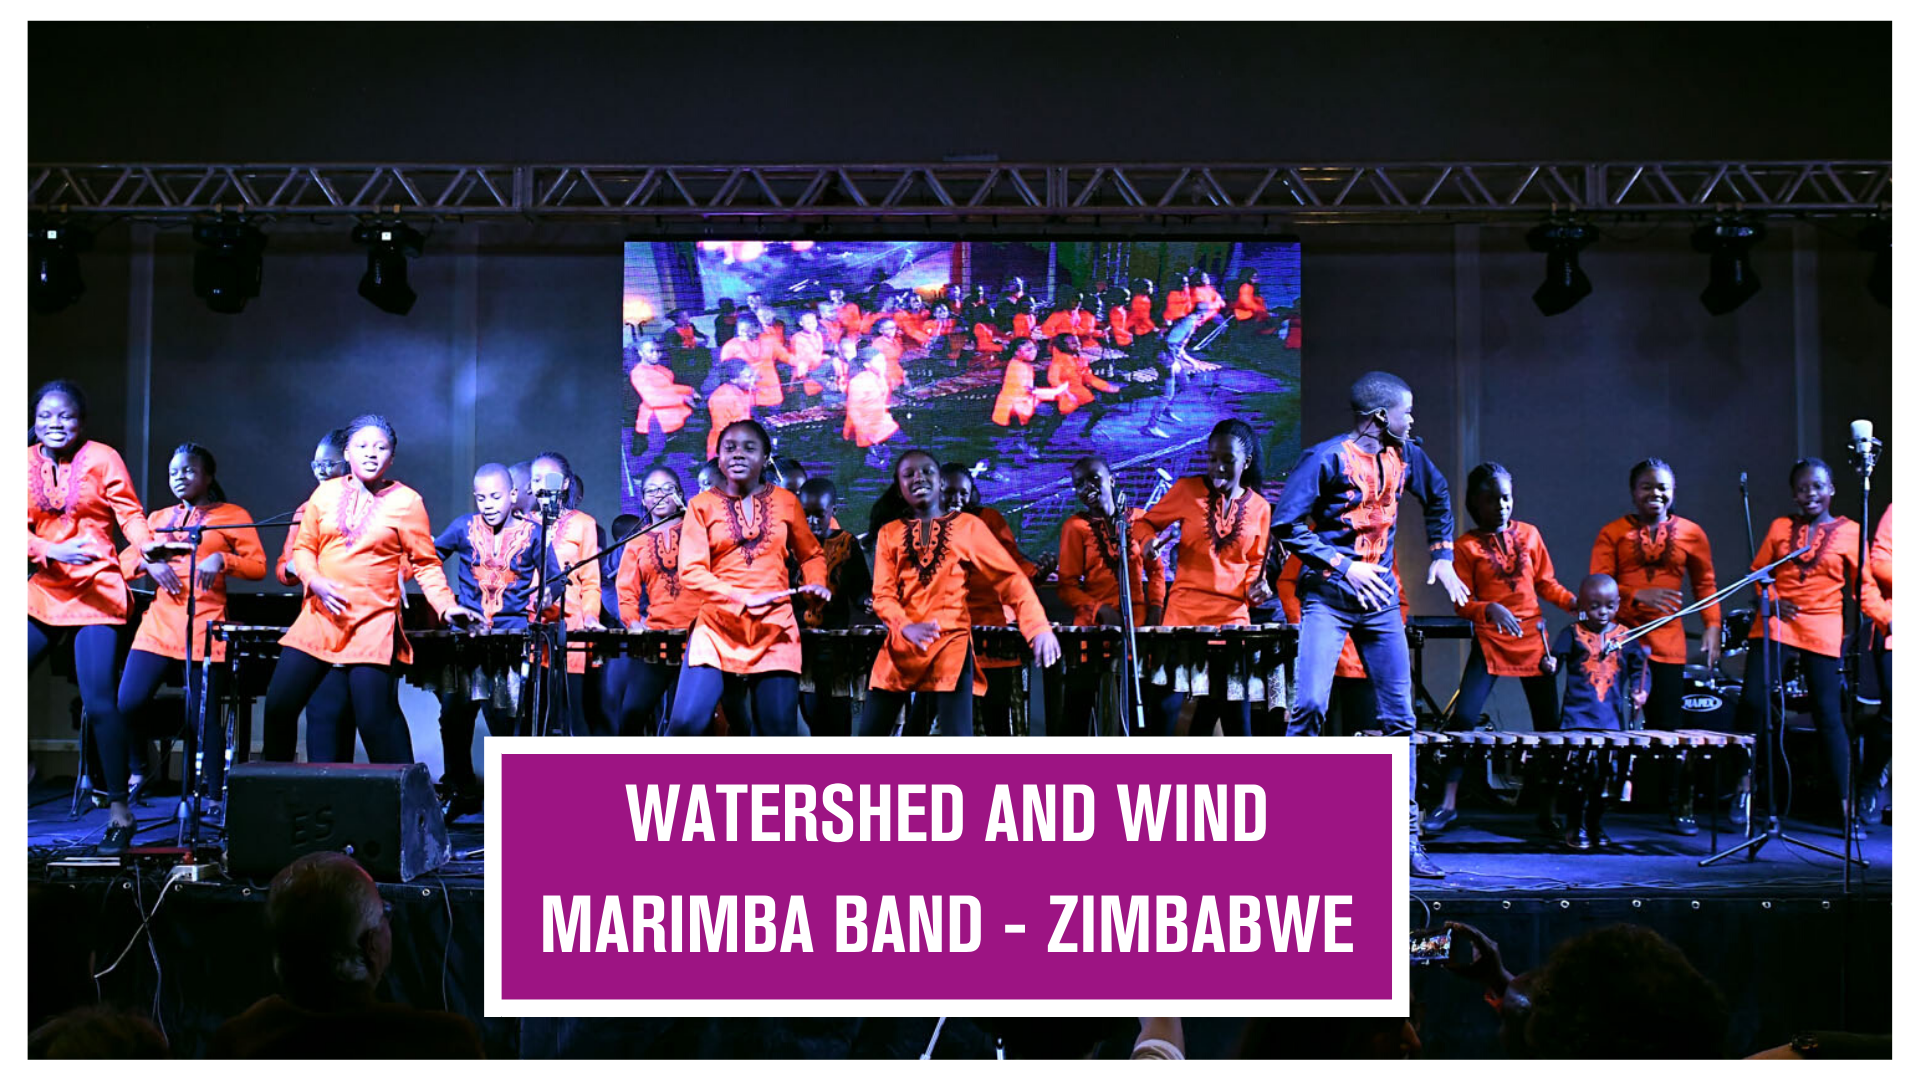 •	WATERSHED AND WIND MARIMBA BAND – ZIMBABWE